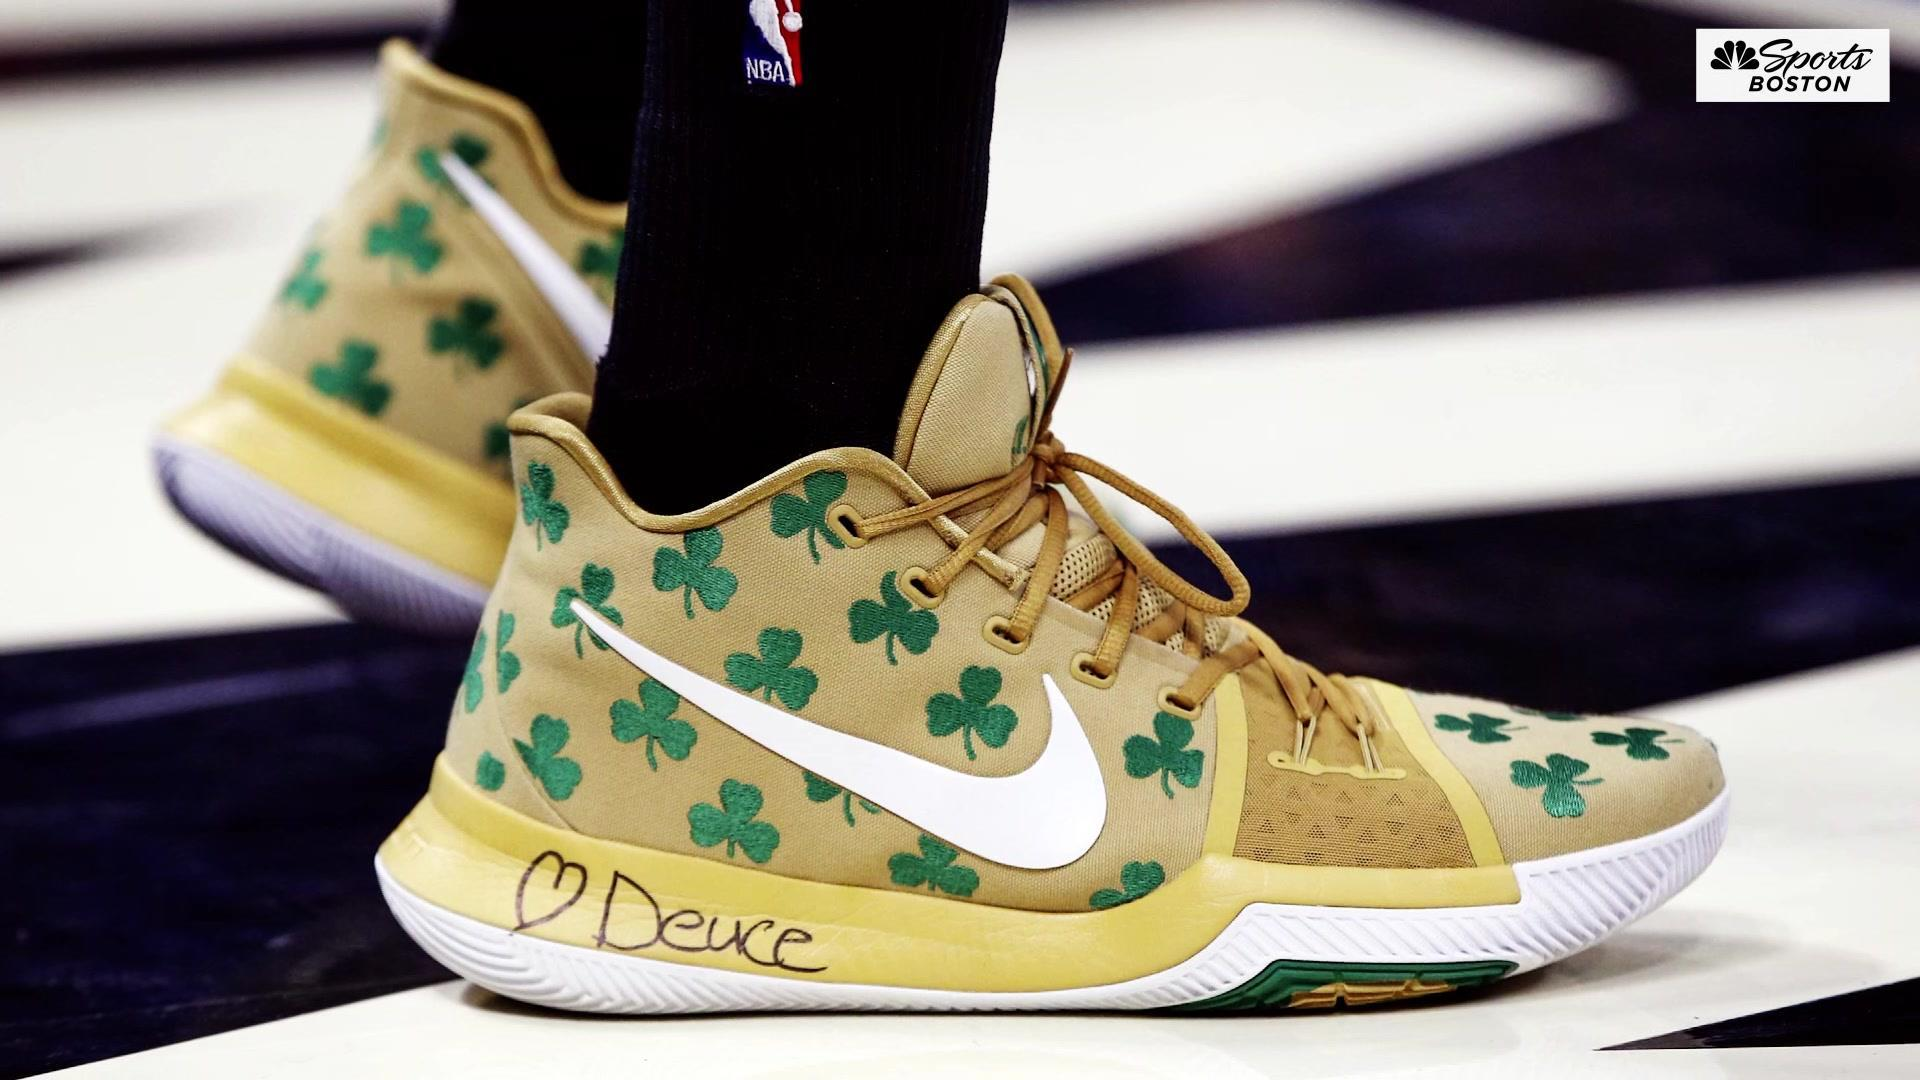 Sneakers aren't just about bright colors for the Celtics